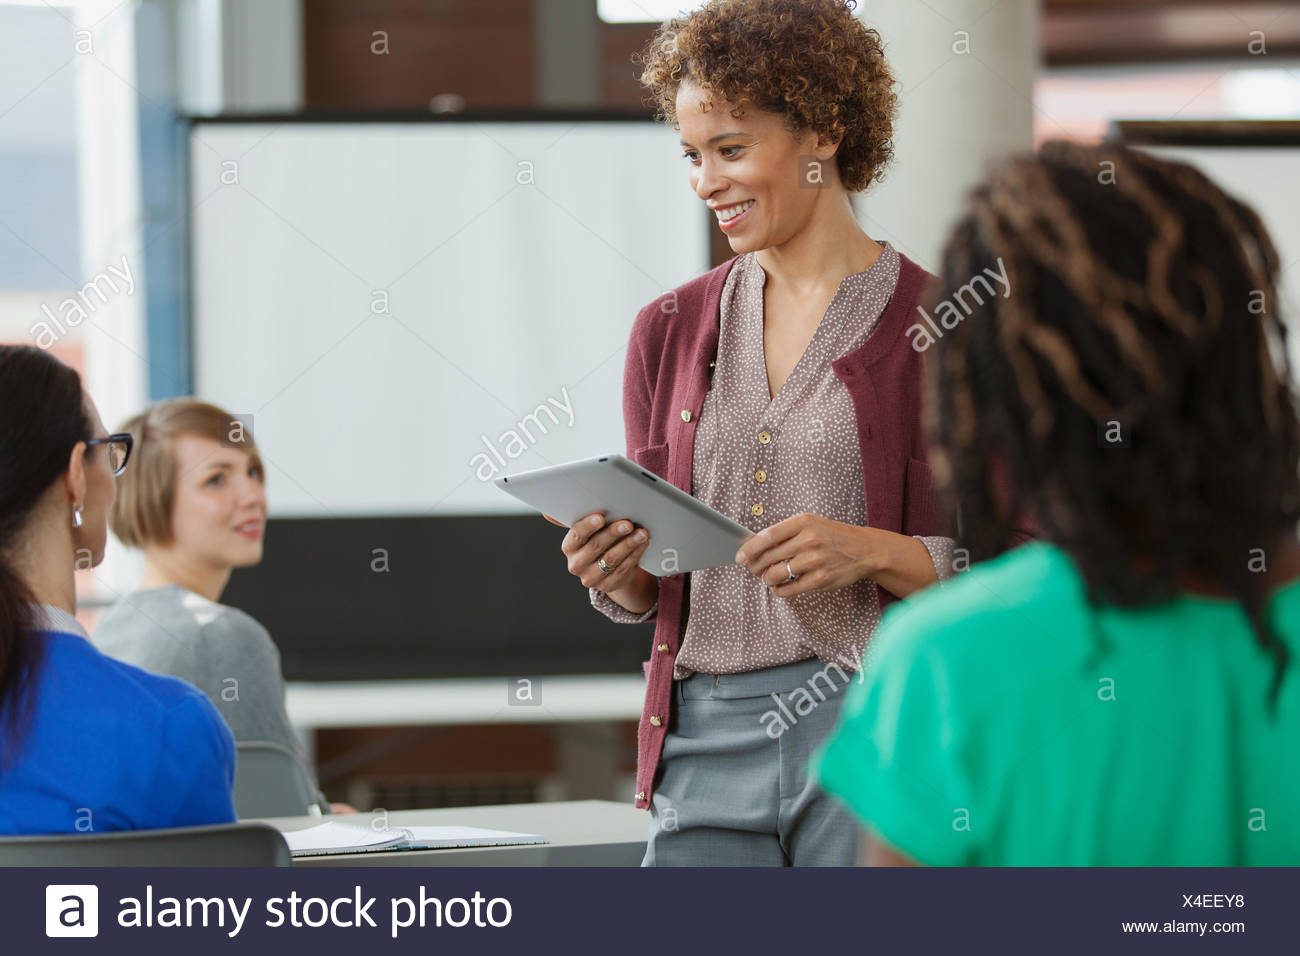 Woman doing business presentation with tablet computer. - Stock Image